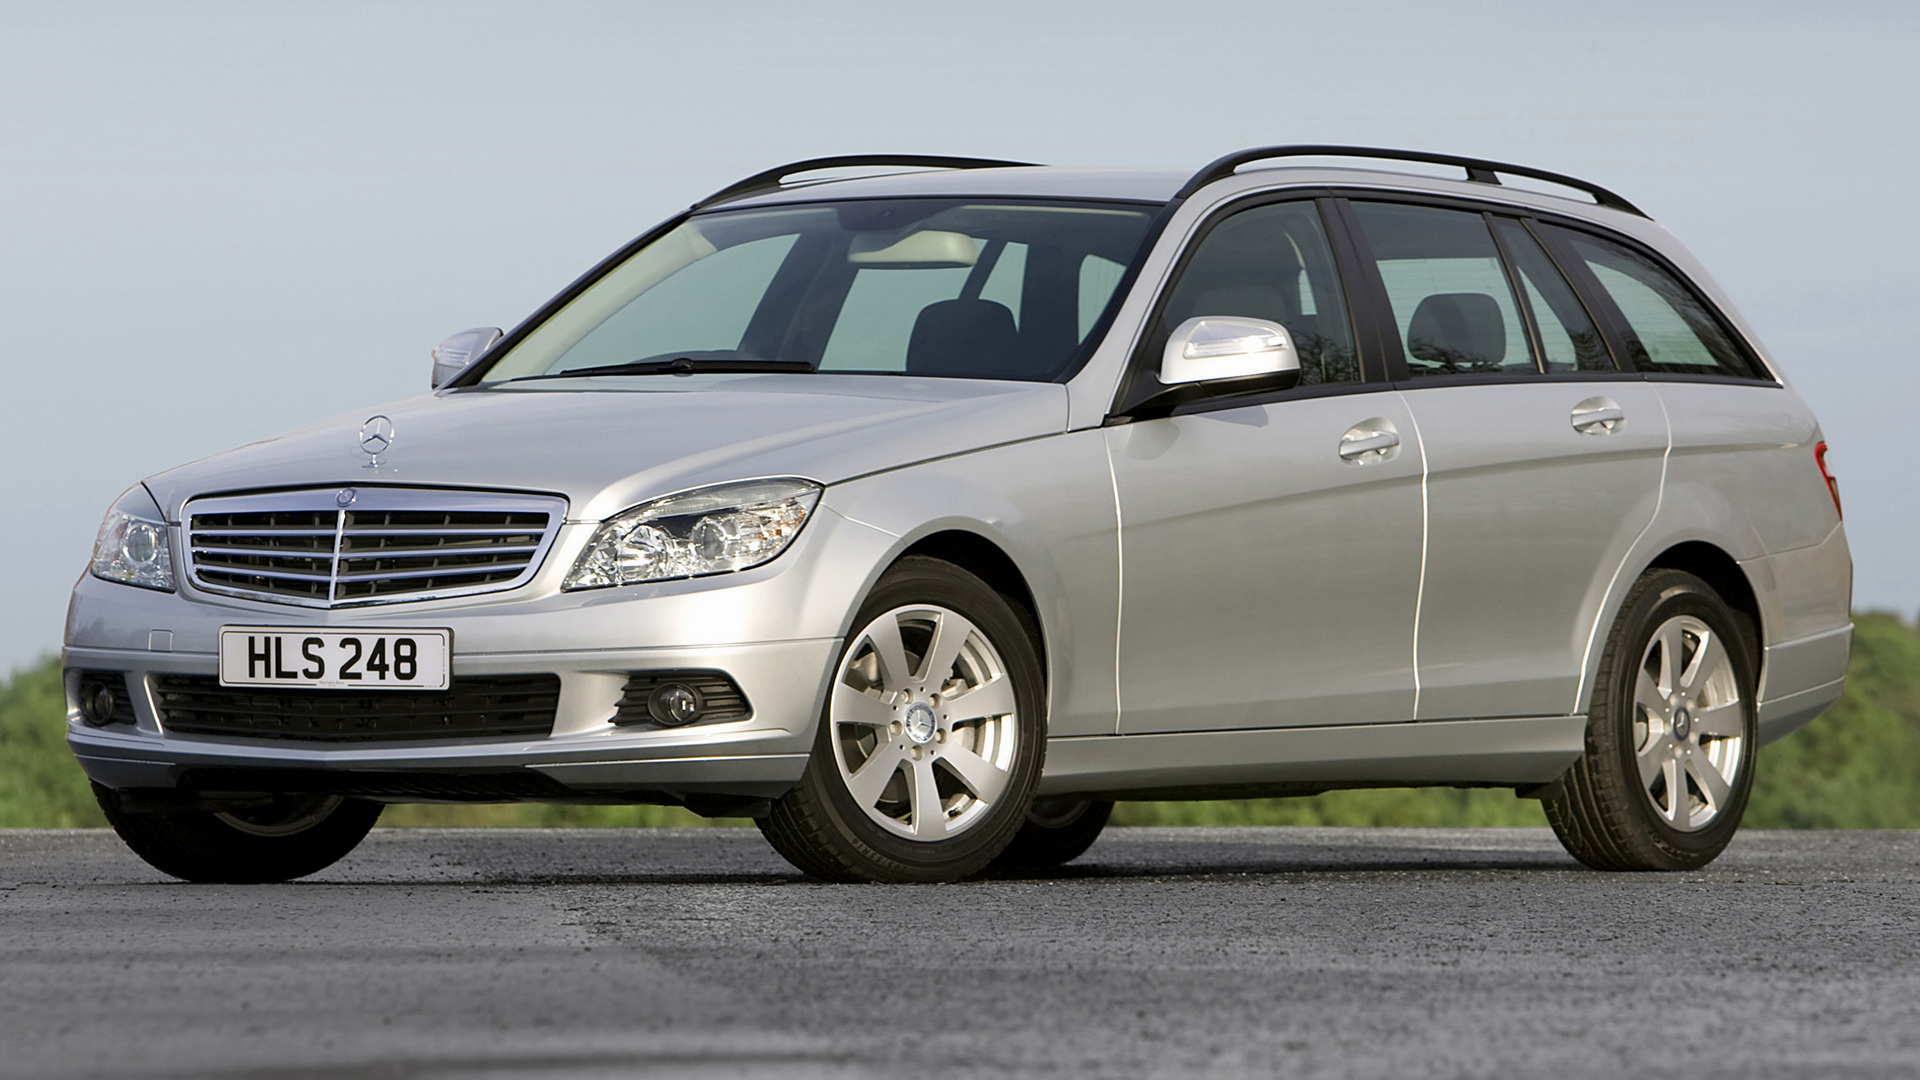 mercedes benz c class estate 2007 uk wallpapers and hd images car pixel. Black Bedroom Furniture Sets. Home Design Ideas